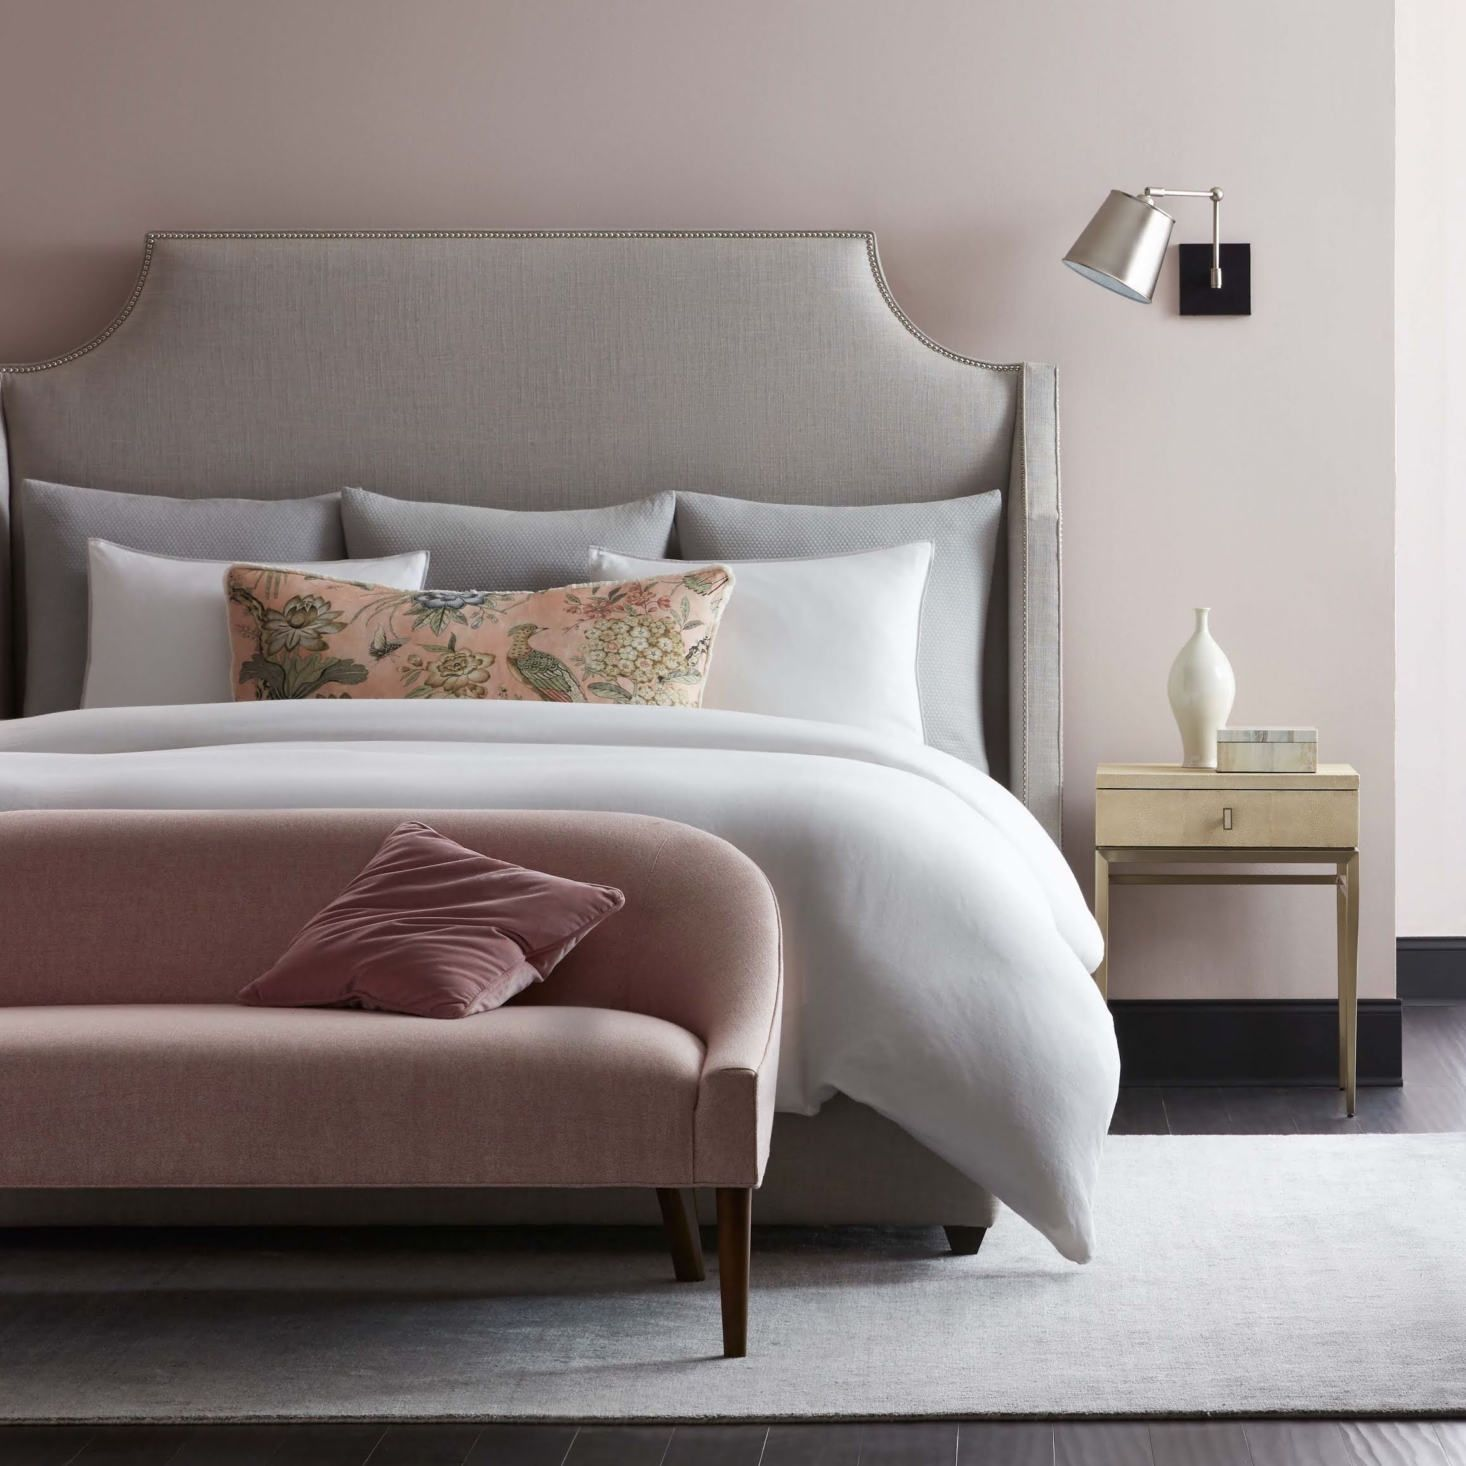 CleanLined Comfort DesignLed Pieces from Mitchell Gold